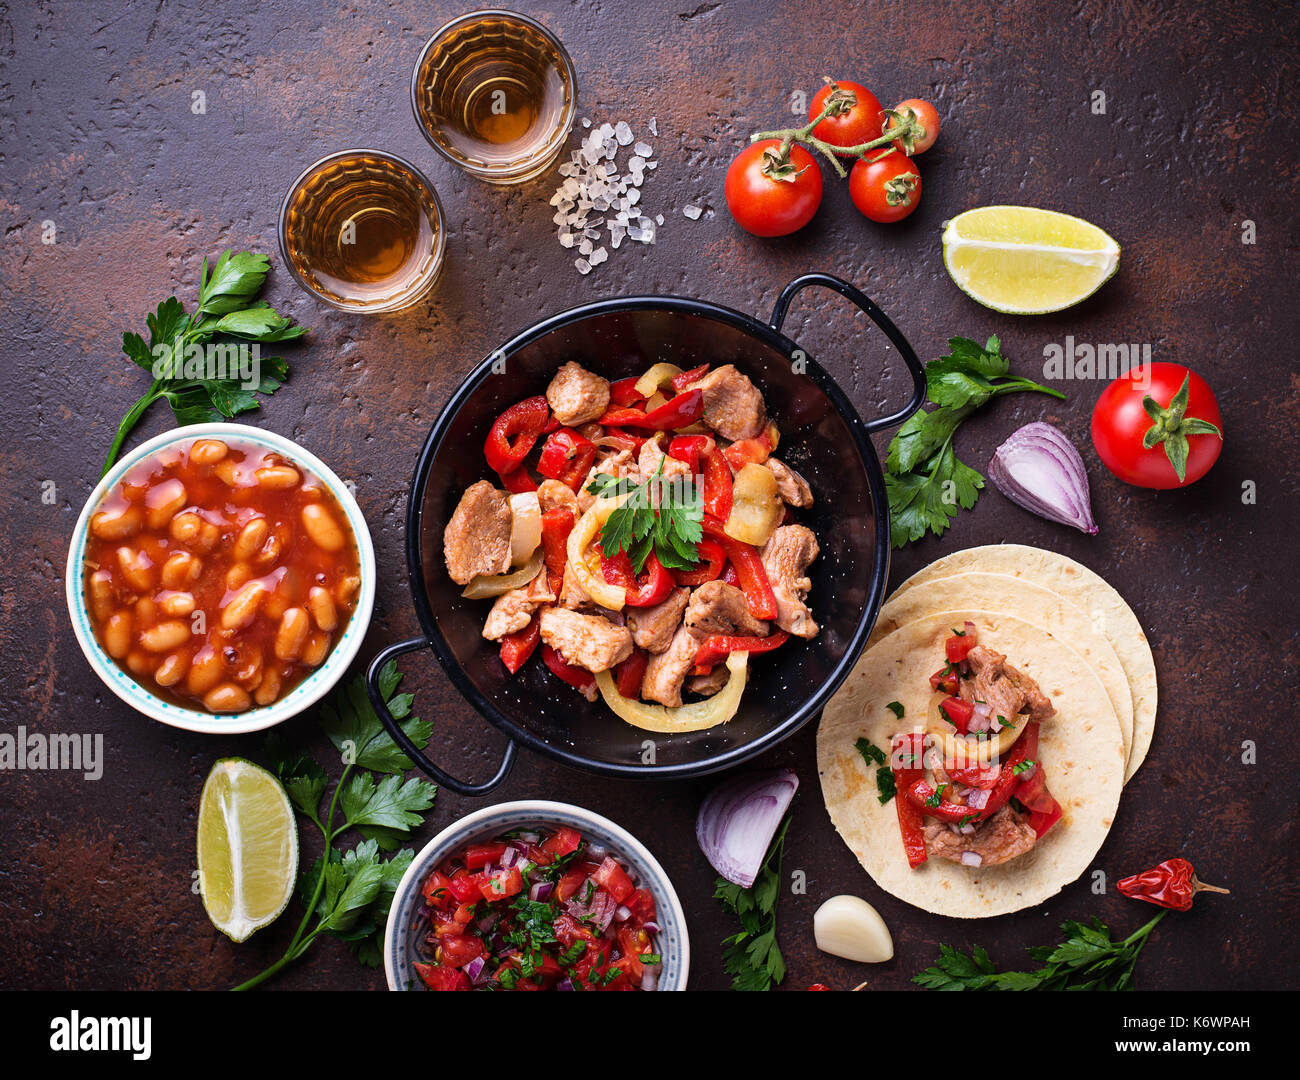 Concept of Mexican food.  Salsa, tortilla, beans, fajitas and te - Stock Image